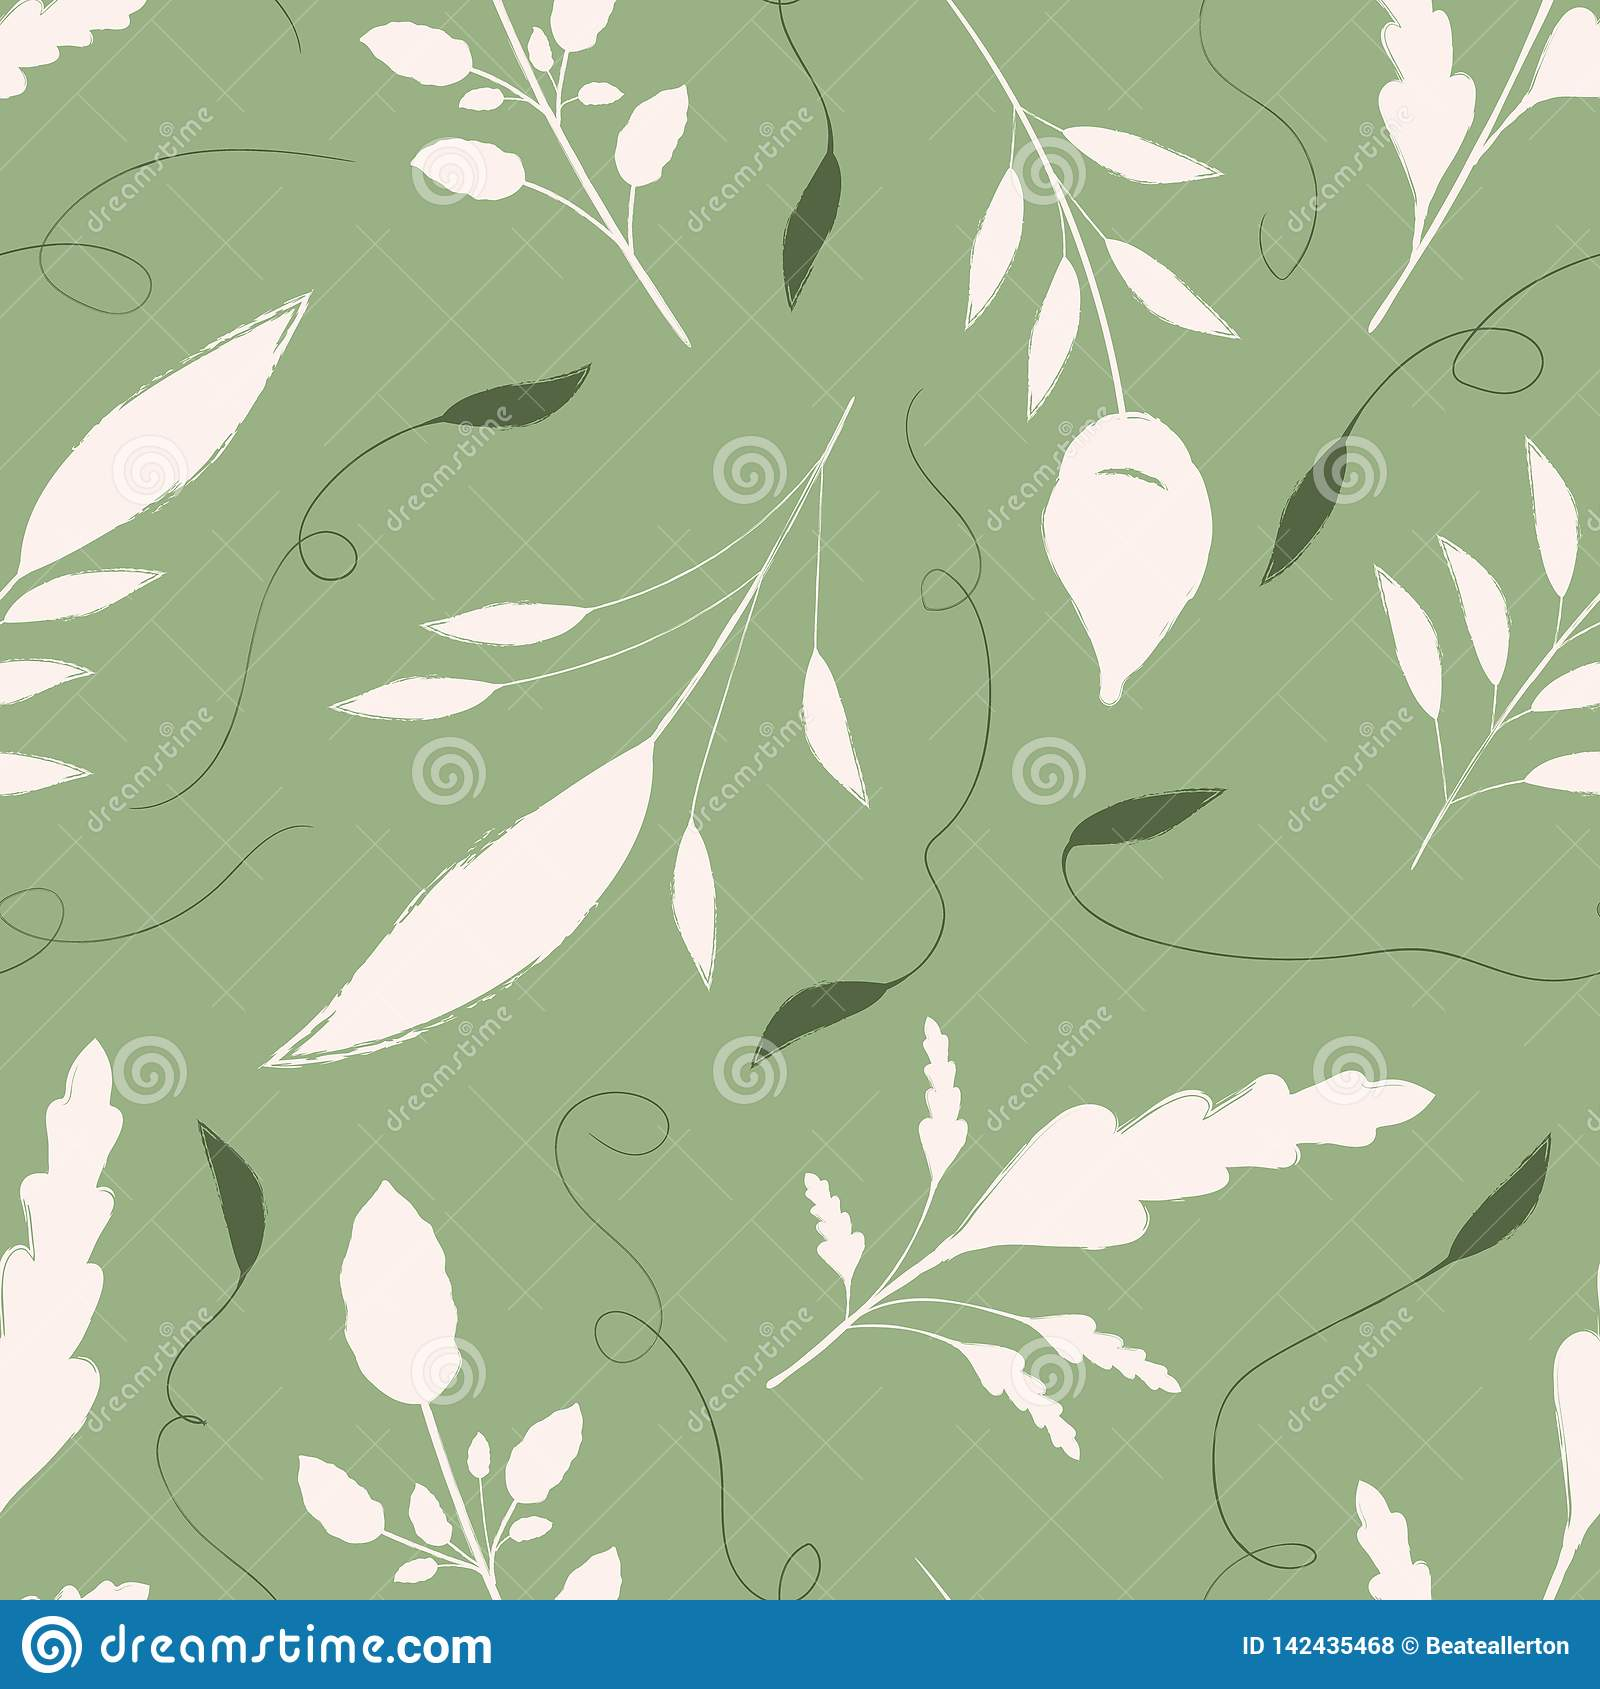 Hand drawn cream and green leaves with ornamental swirls. Seamless vector pattern on warm green background. Great for